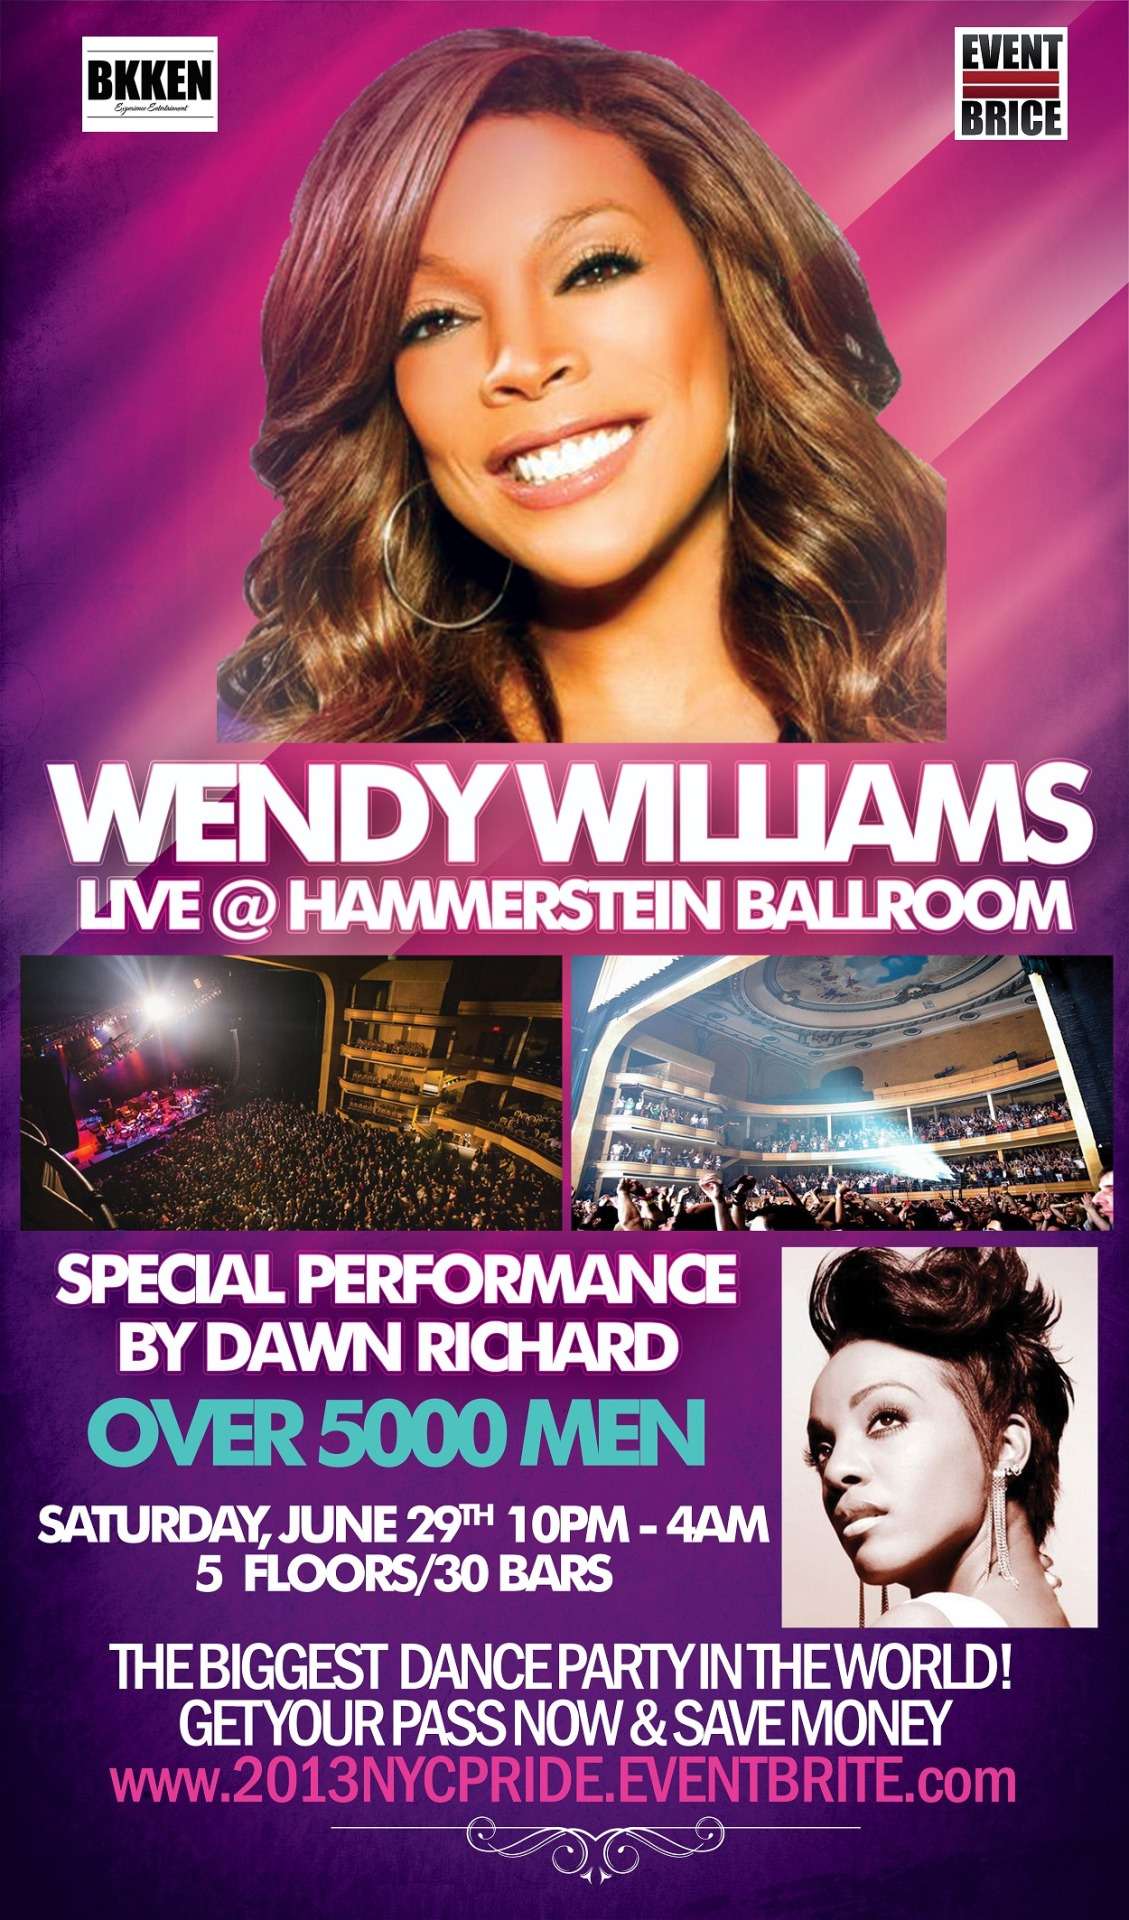 NYC! I'm performing at PRIDE 2013 on June 29th at Hammerstein Ballroom! Come dance!